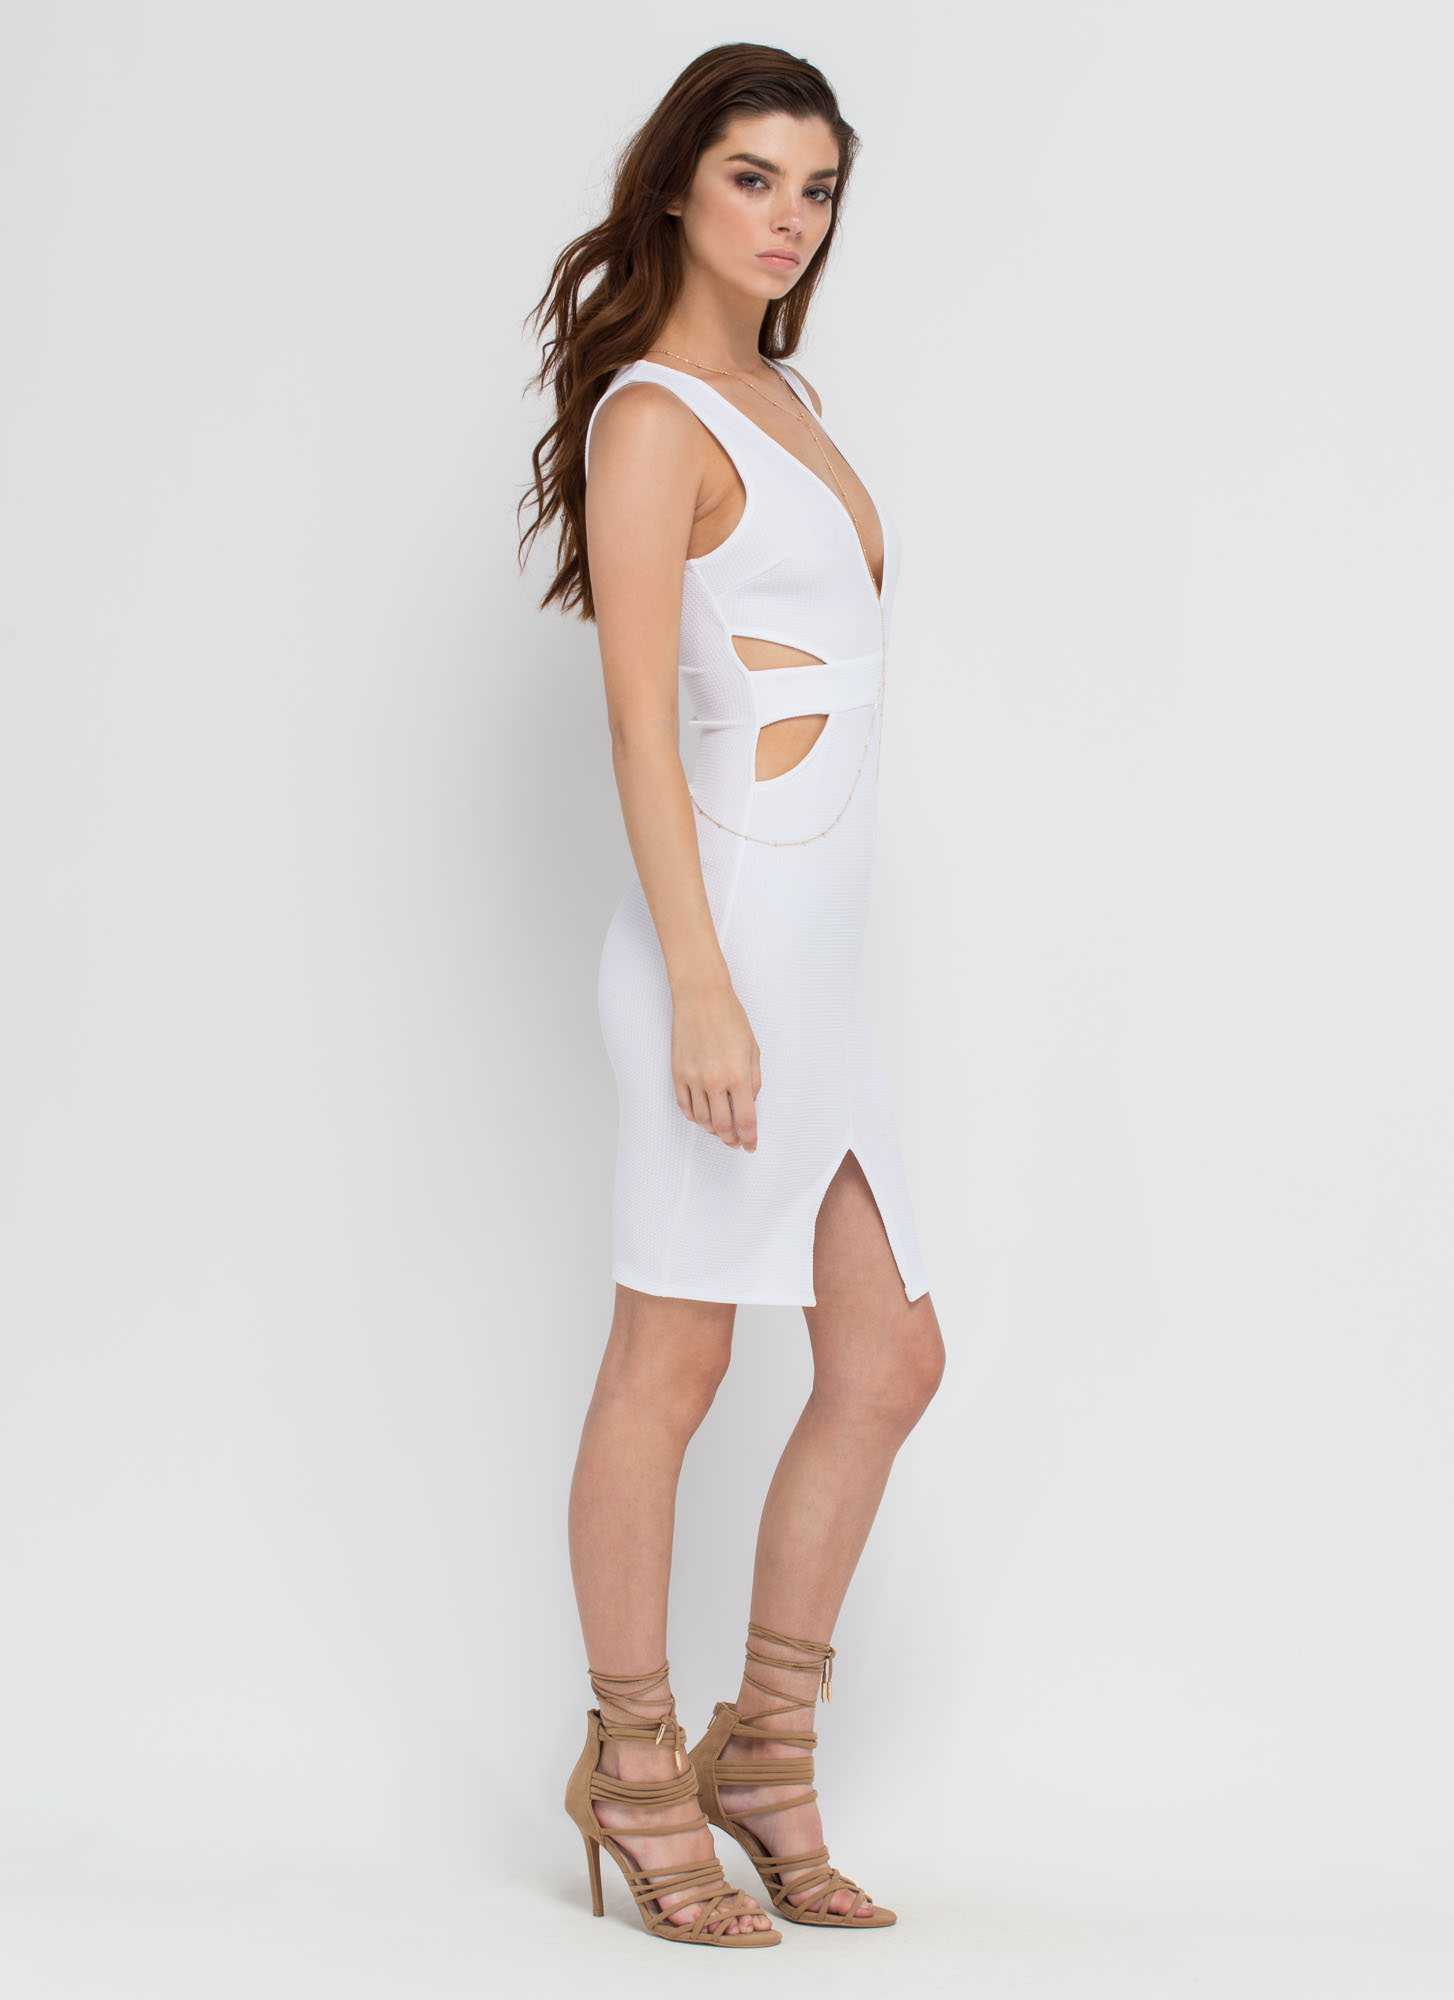 Center Stage Strappy Cut-Out Dress WHITE